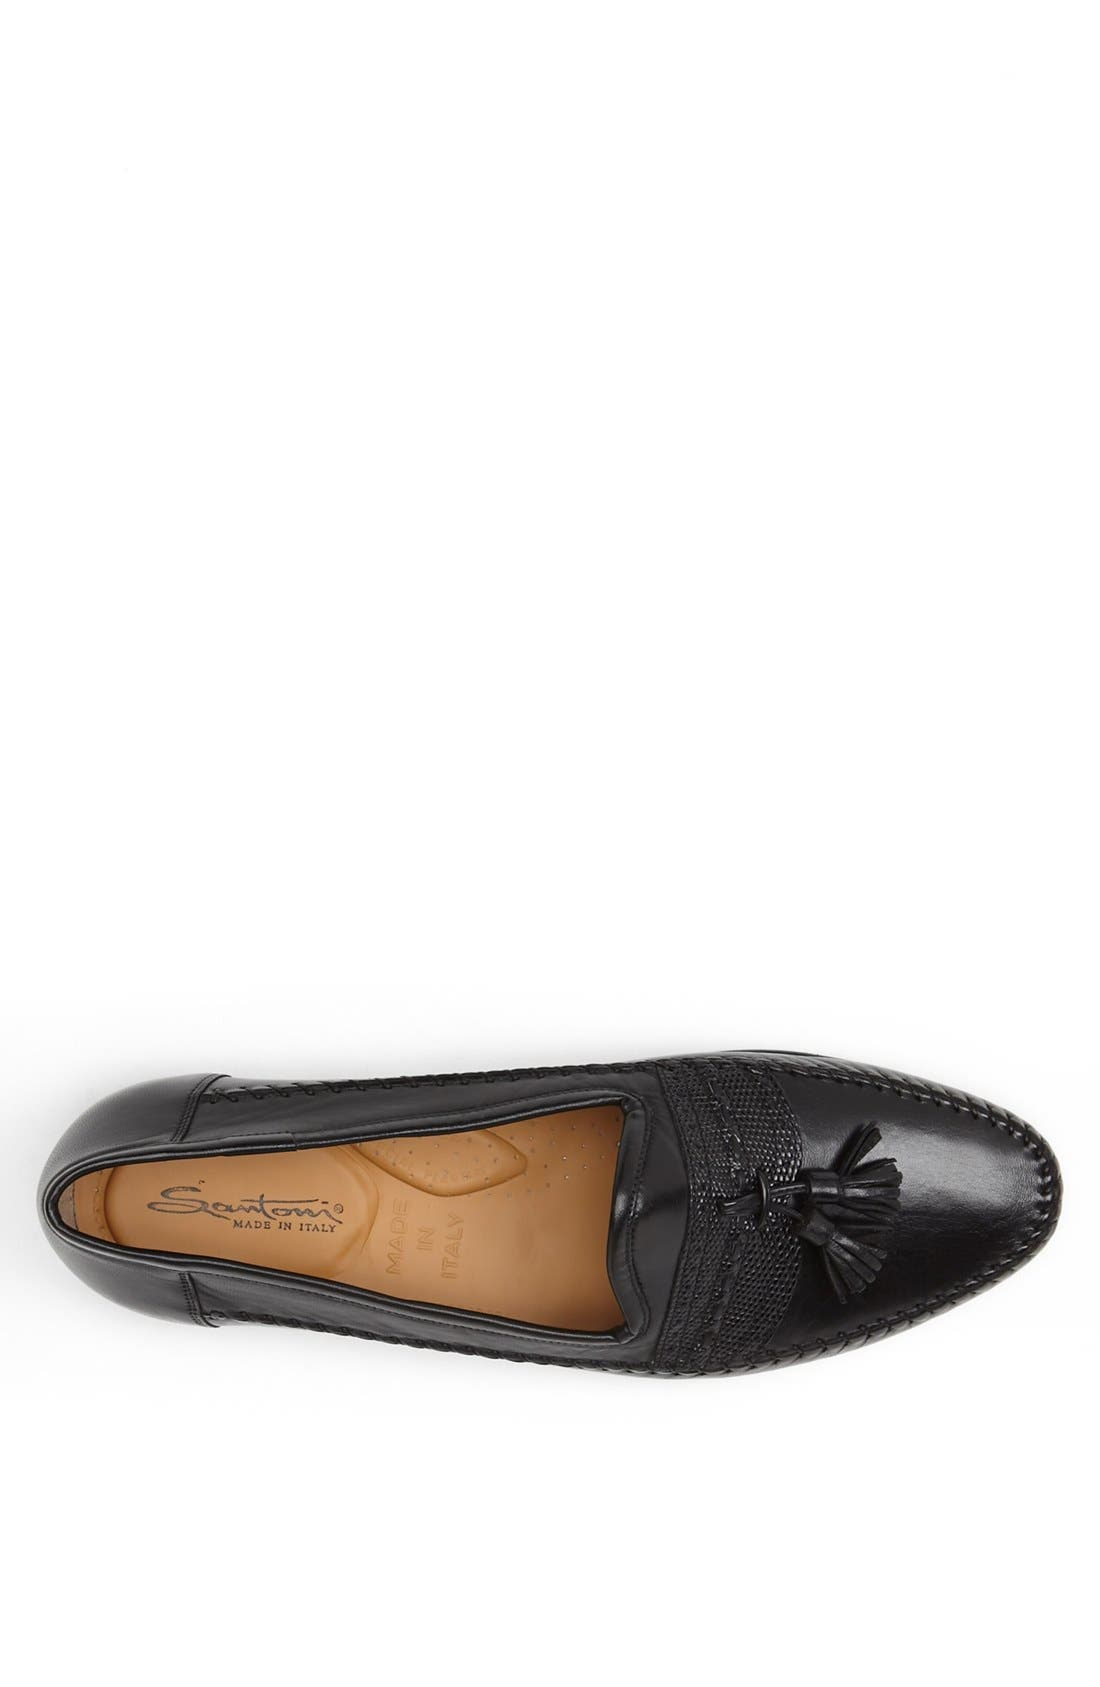 'Hammon' Loafer,                             Alternate thumbnail 3, color,                             BLK